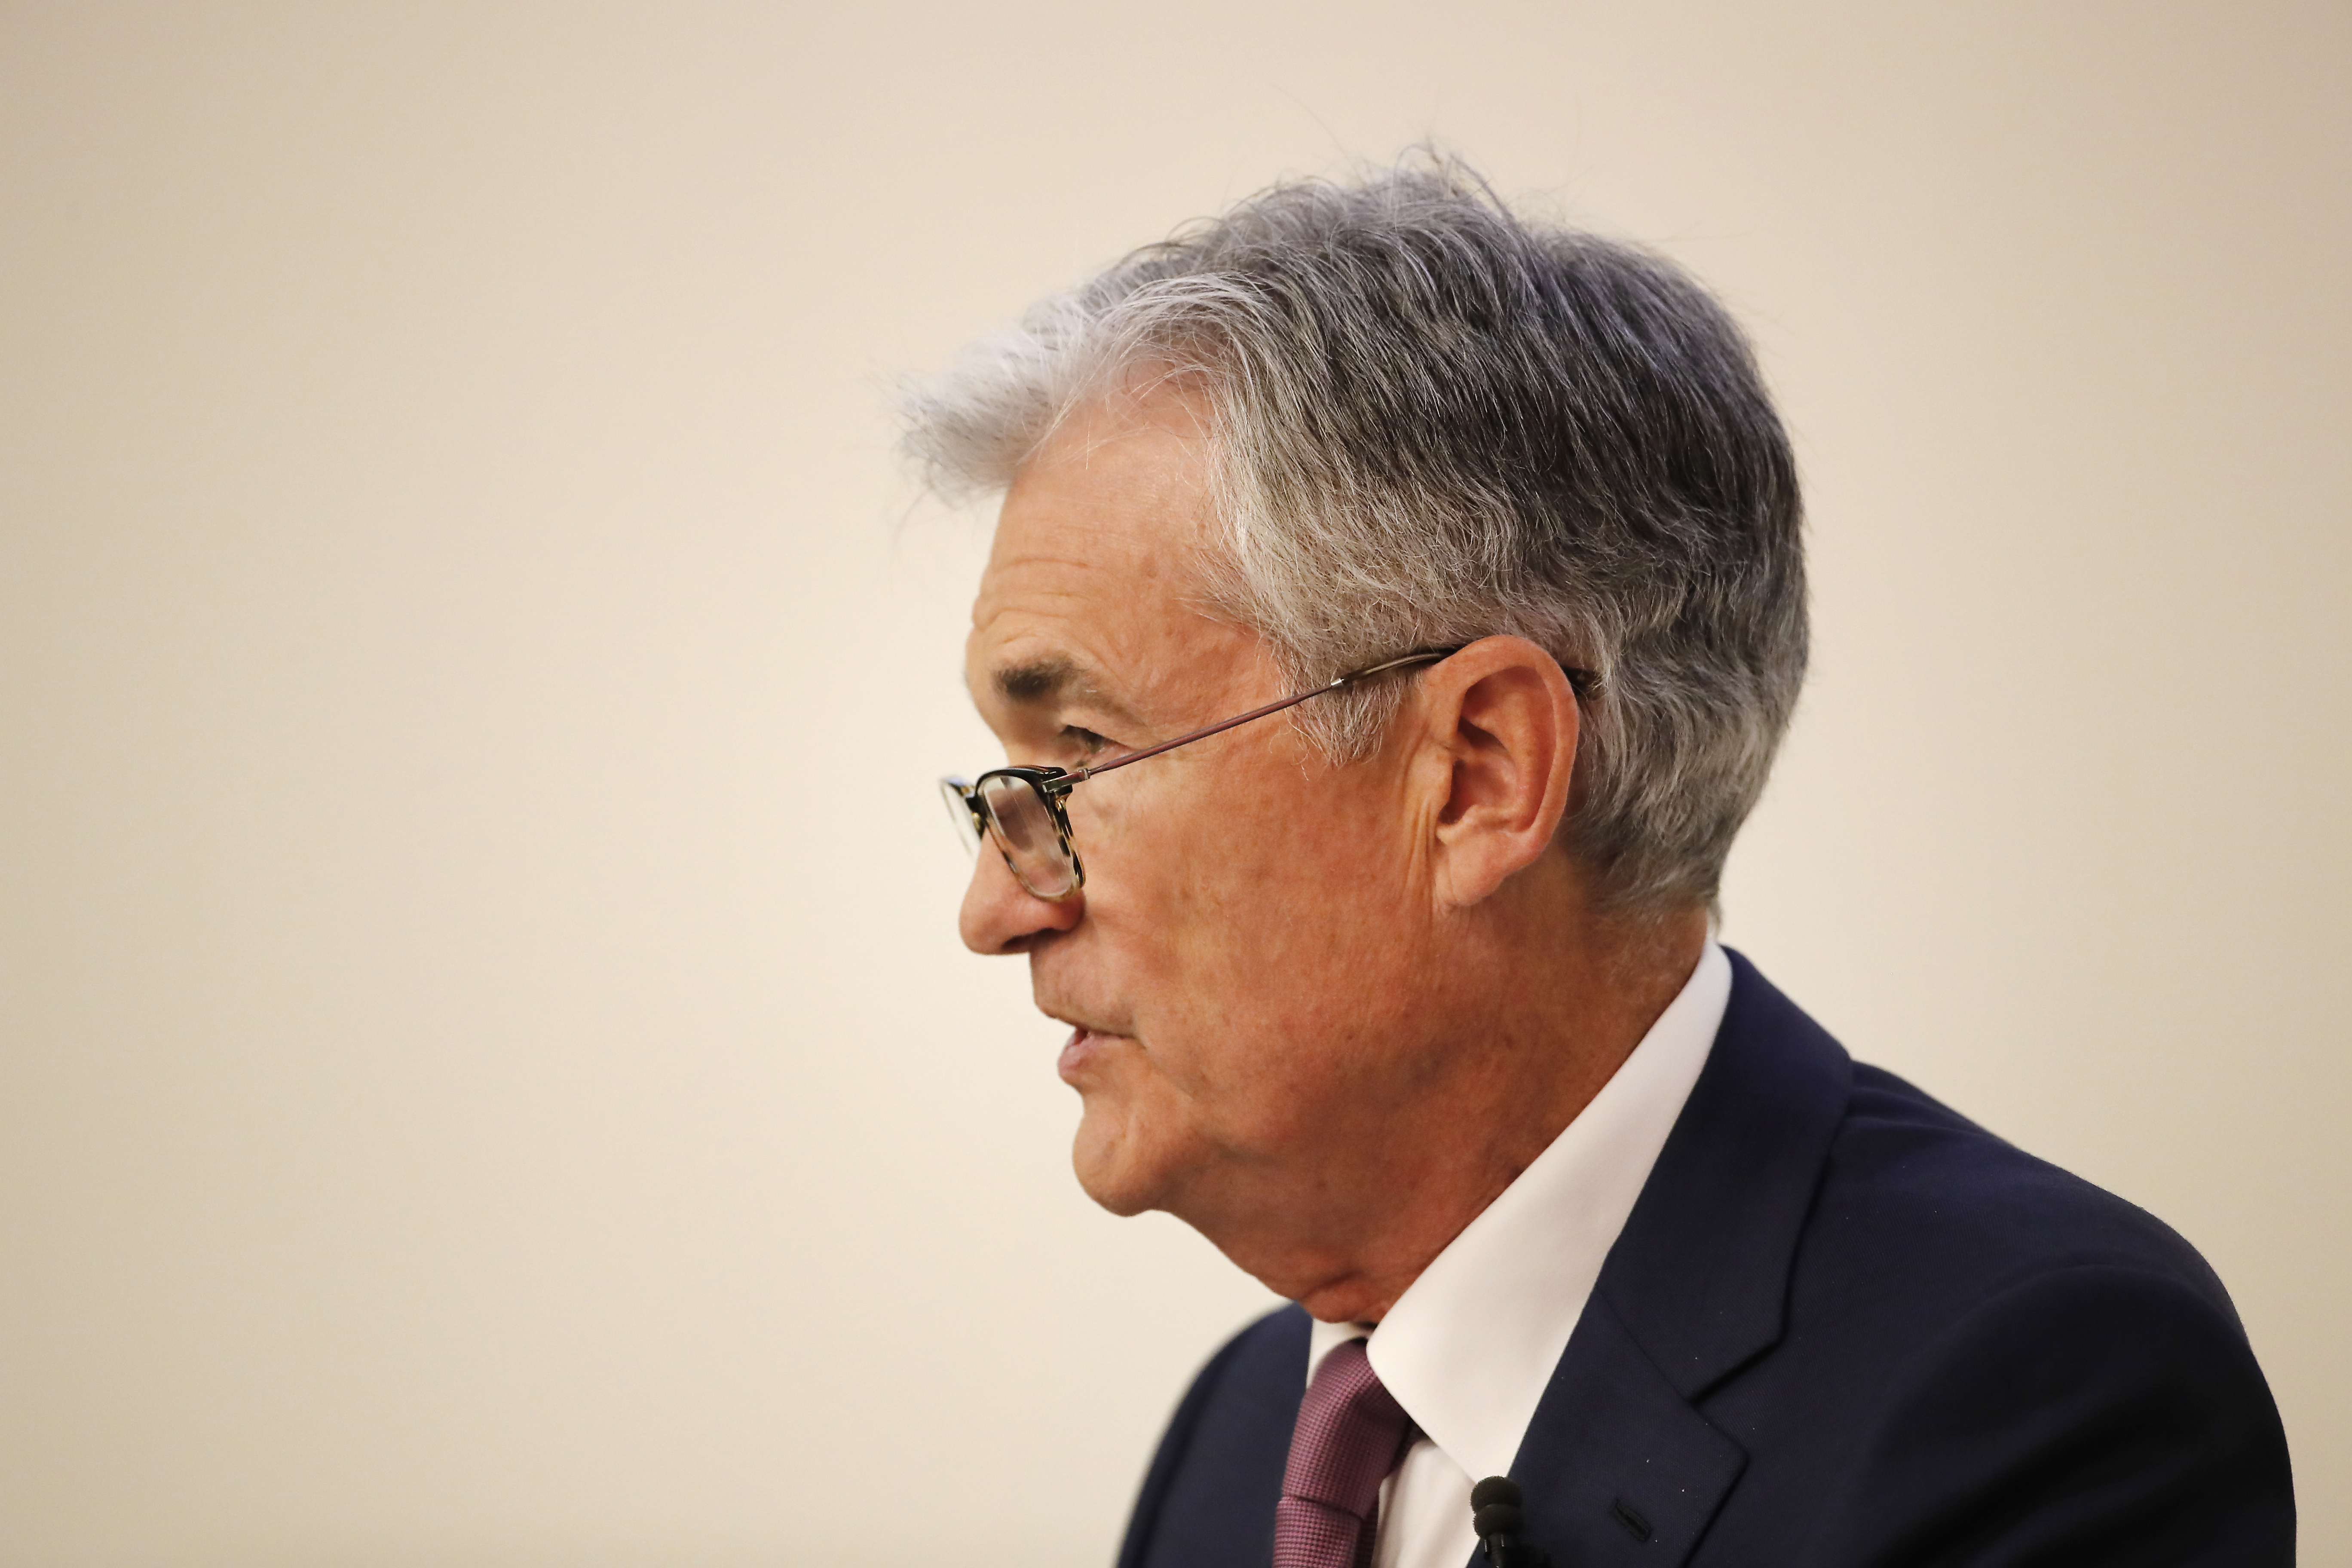 Jerome Powell, chairman of the U.S. Federal Reserve, speaks during an event at the University of Zurich in Zurich, Switzerland, on Friday, Sept. 6, 2019.